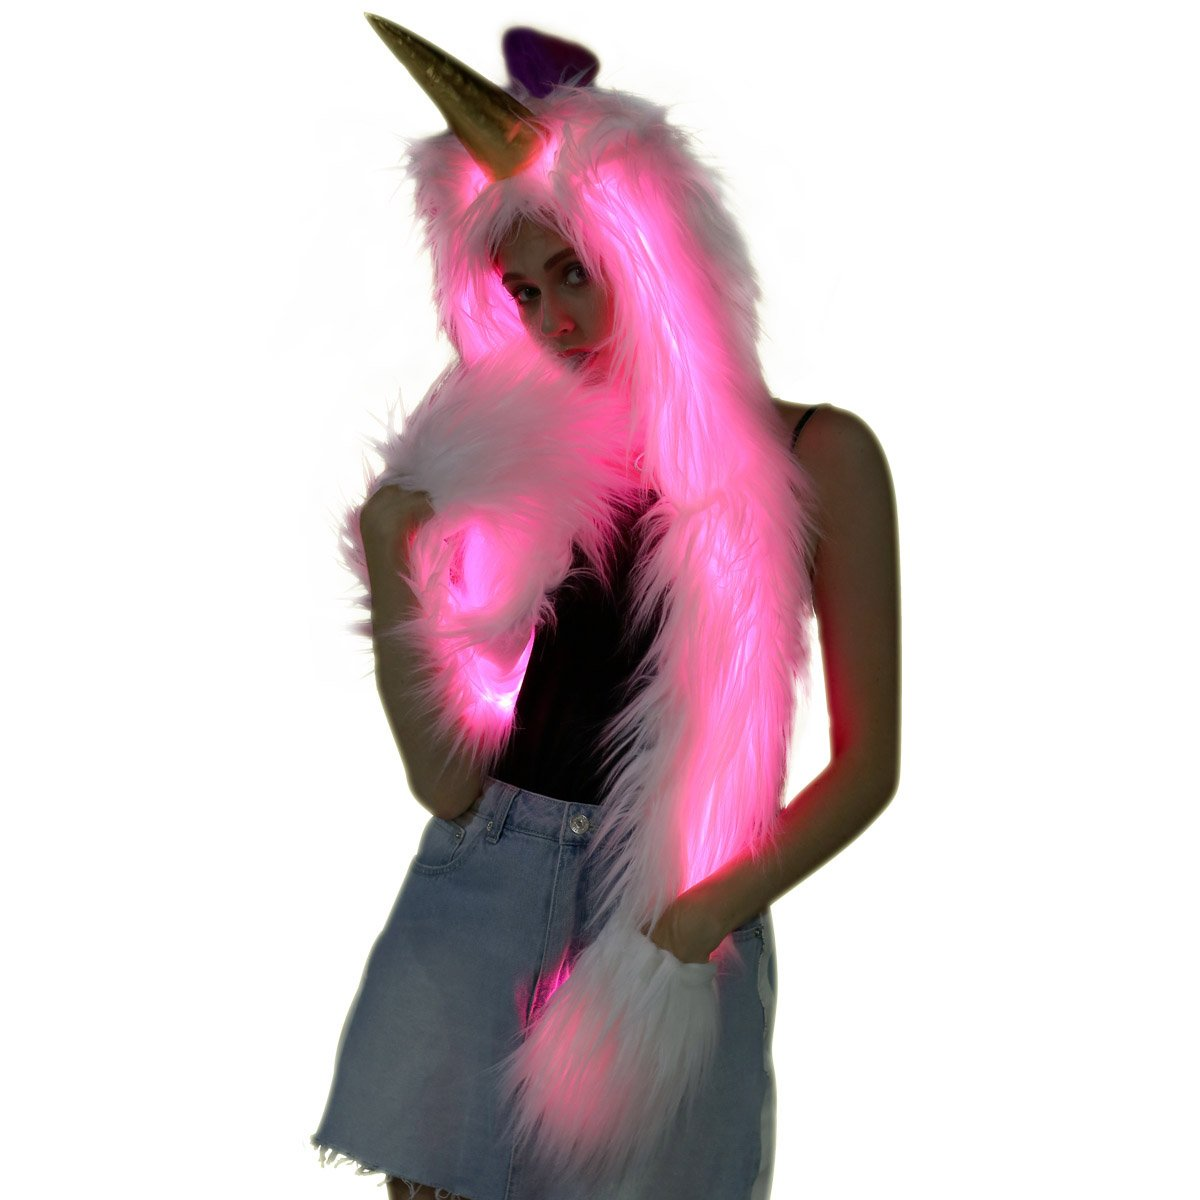 SZTOPFOCUS Faux Fur Light up Burning Glow RGB Stripe Color Changing Flashing Control LED Bunny Hood Hat with Scarf Gloves Mittens (White Unicorn)